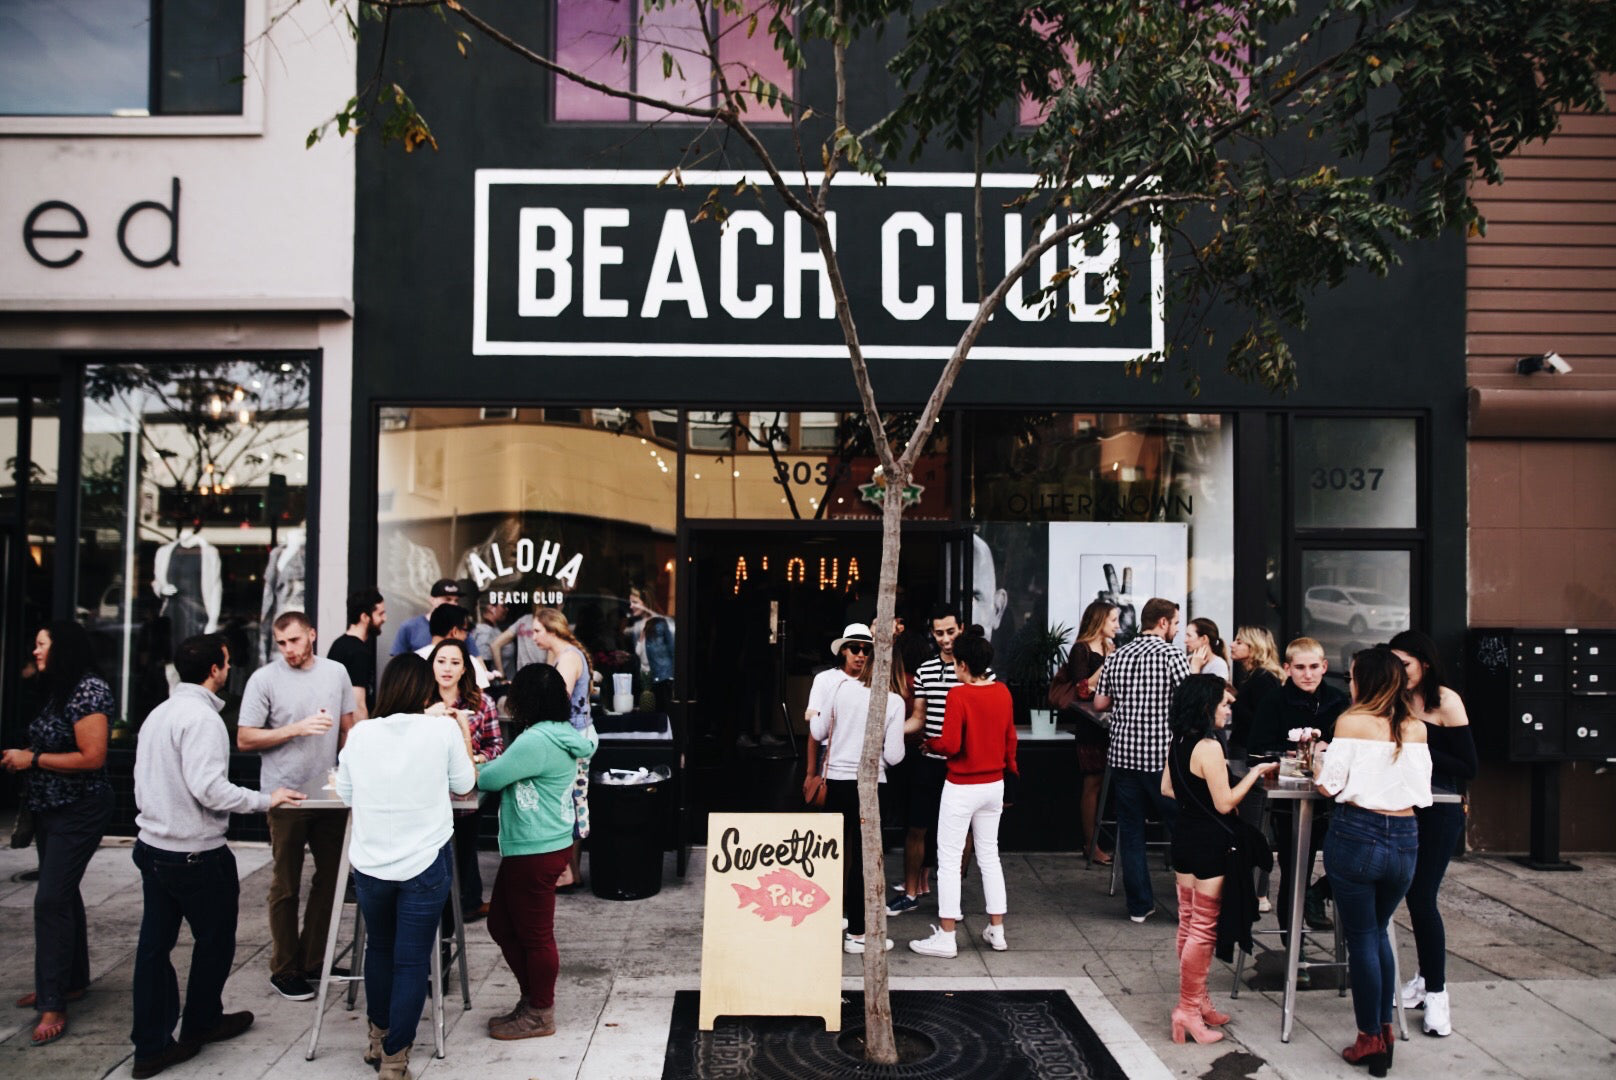 Aloha Beach Club x Sweeten Poke Pop Up at the North Park Flagship